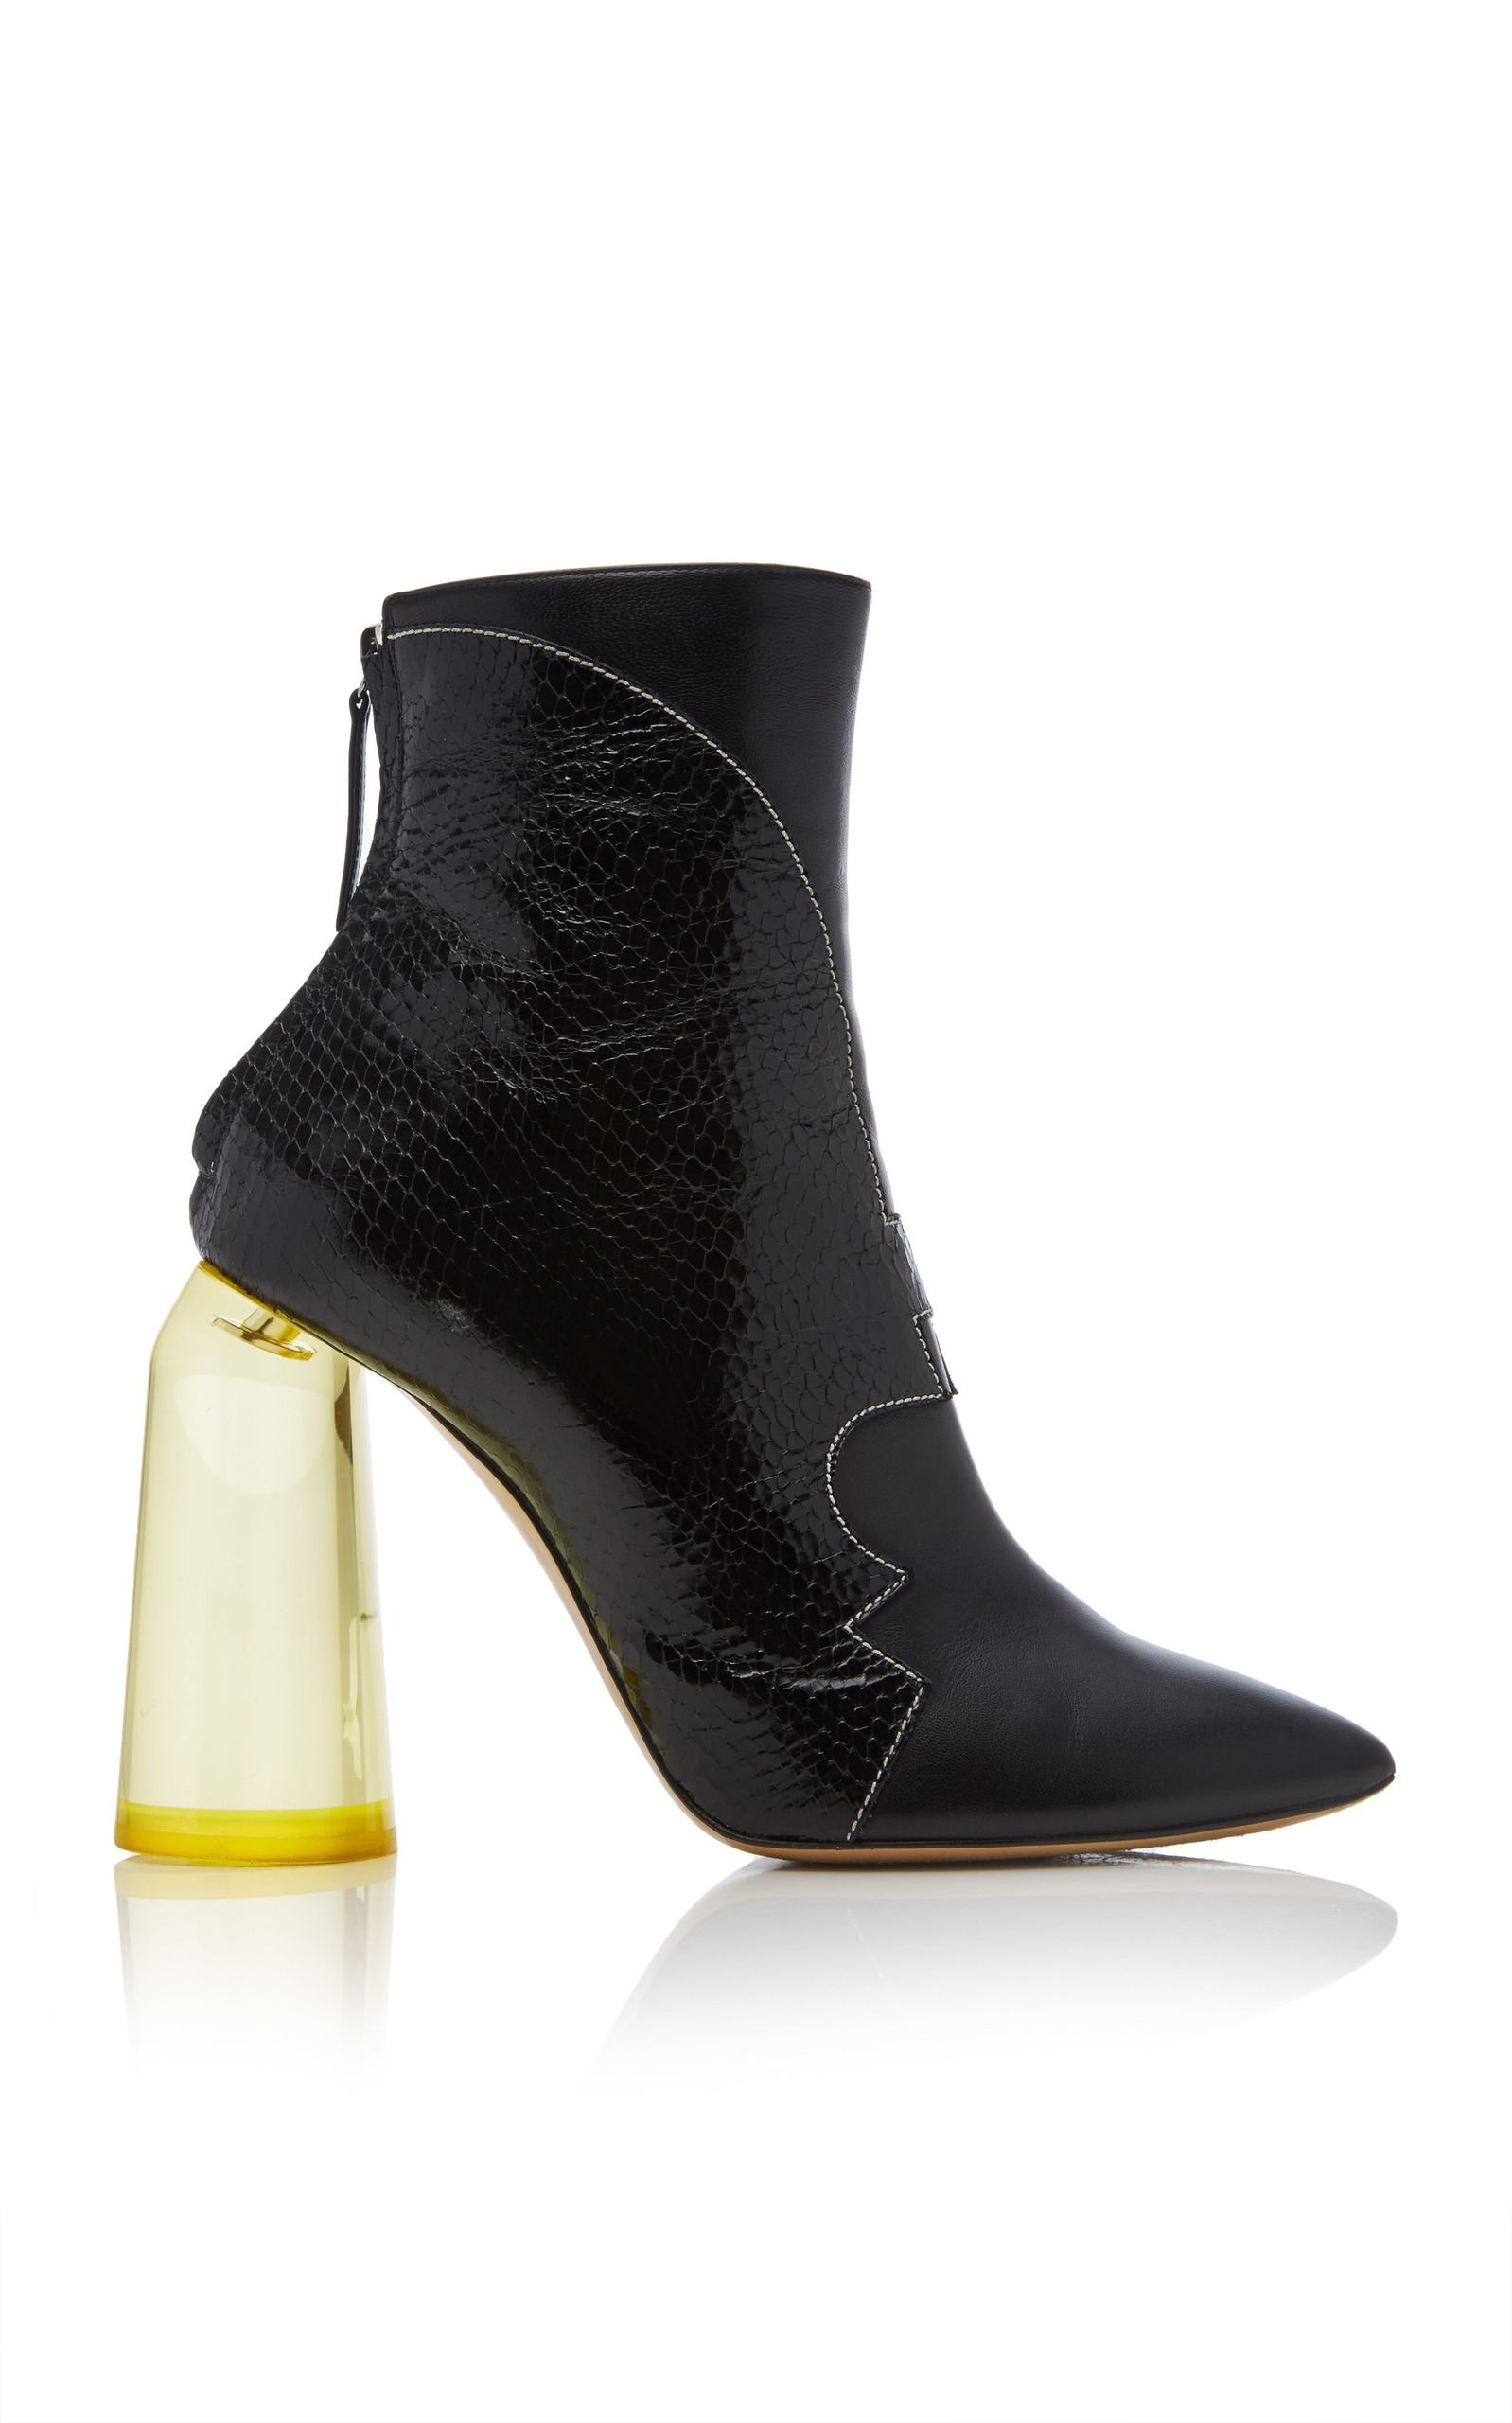 TEMPO PATENT LEATHER SNAKE ANKLE BOOTS